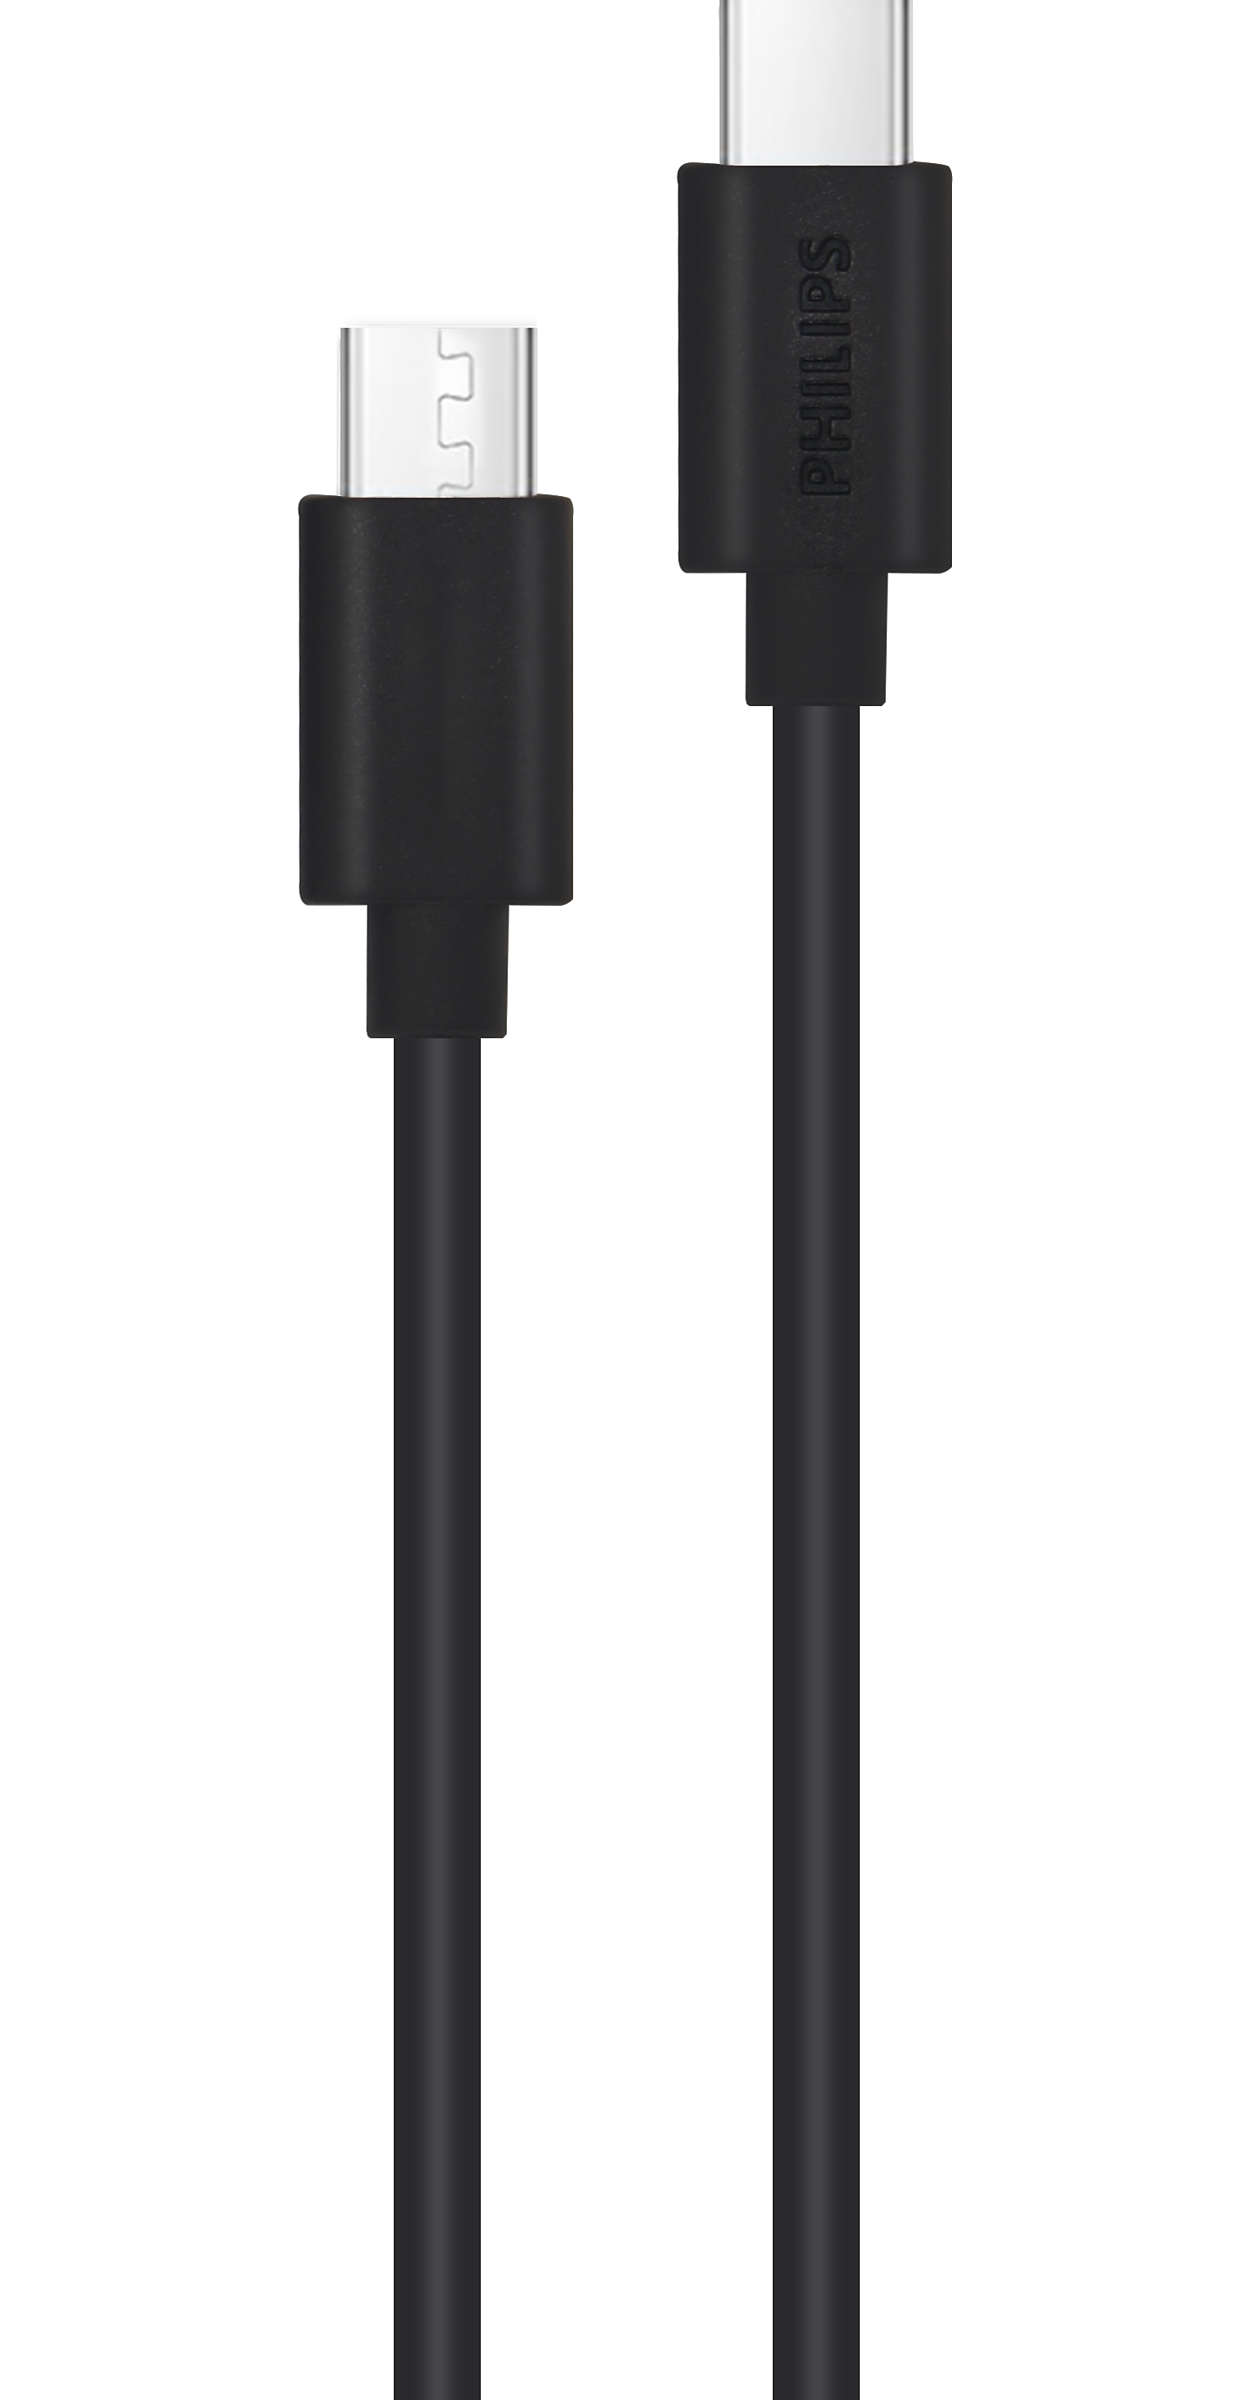 2 m USB-C to USB-C cable